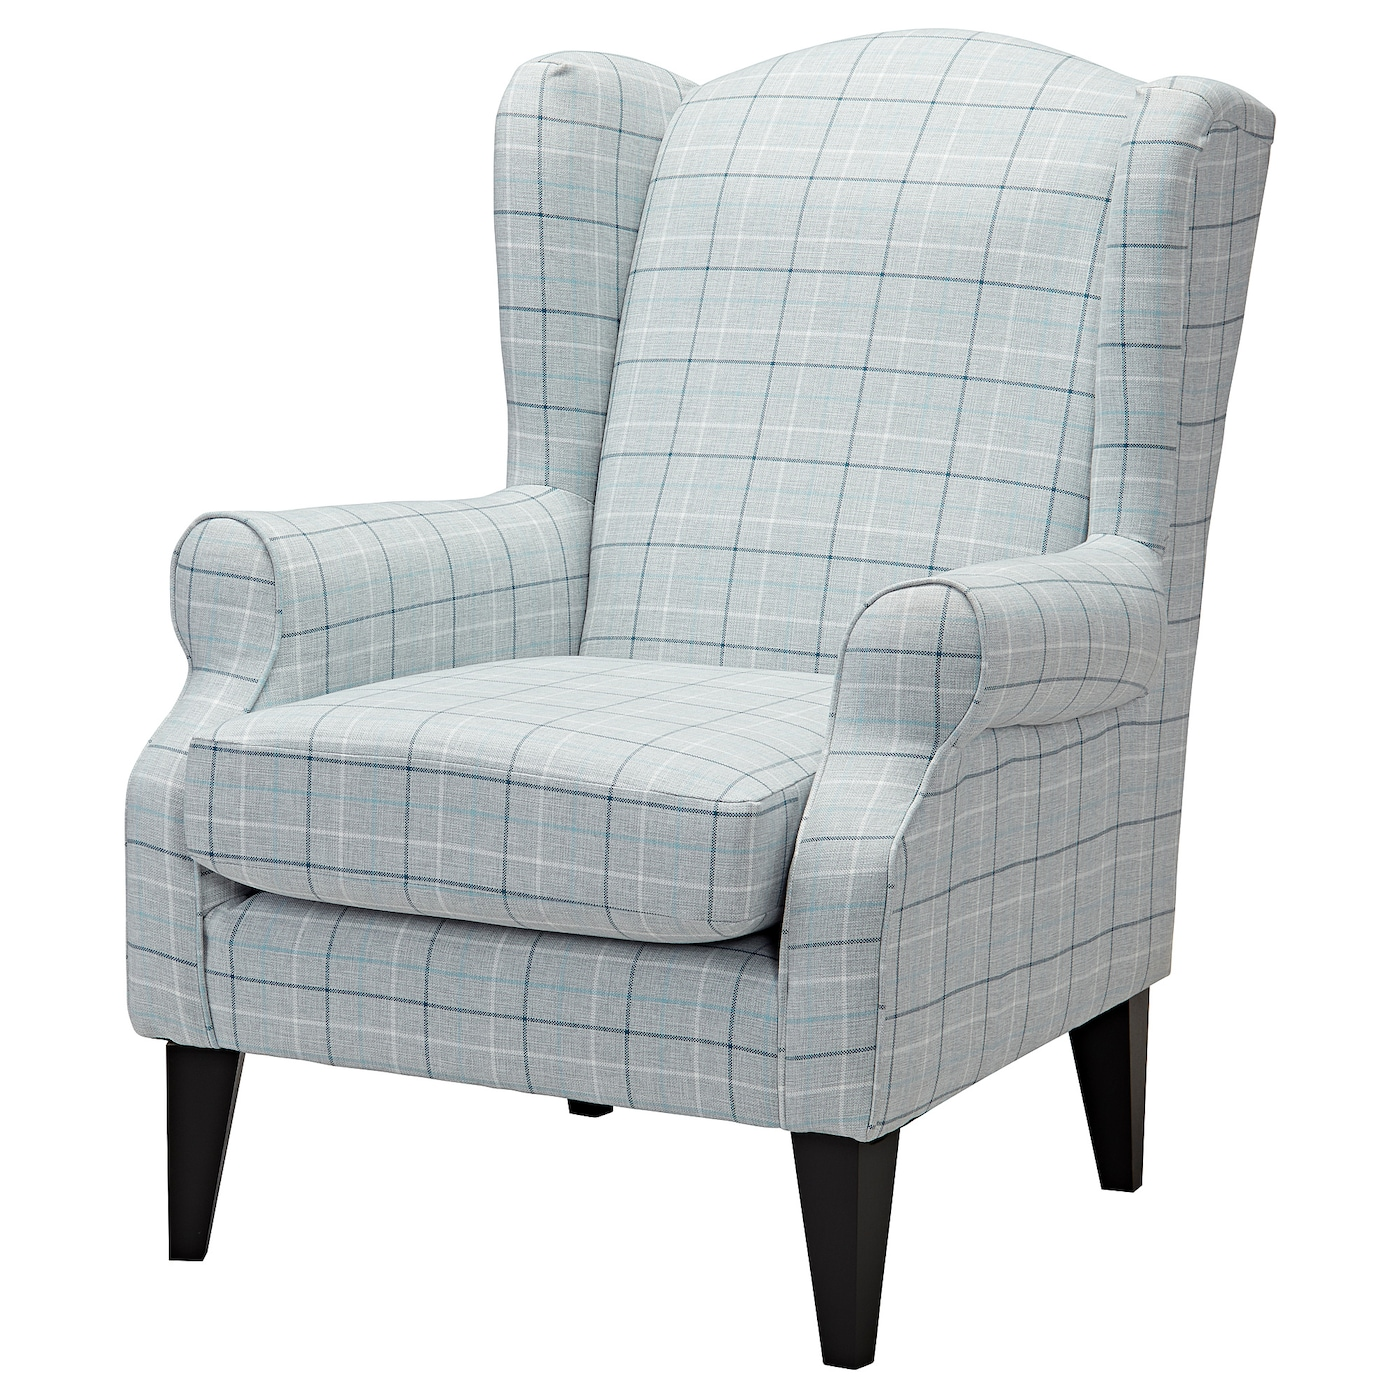 IKEA TORSEBRO wing chair